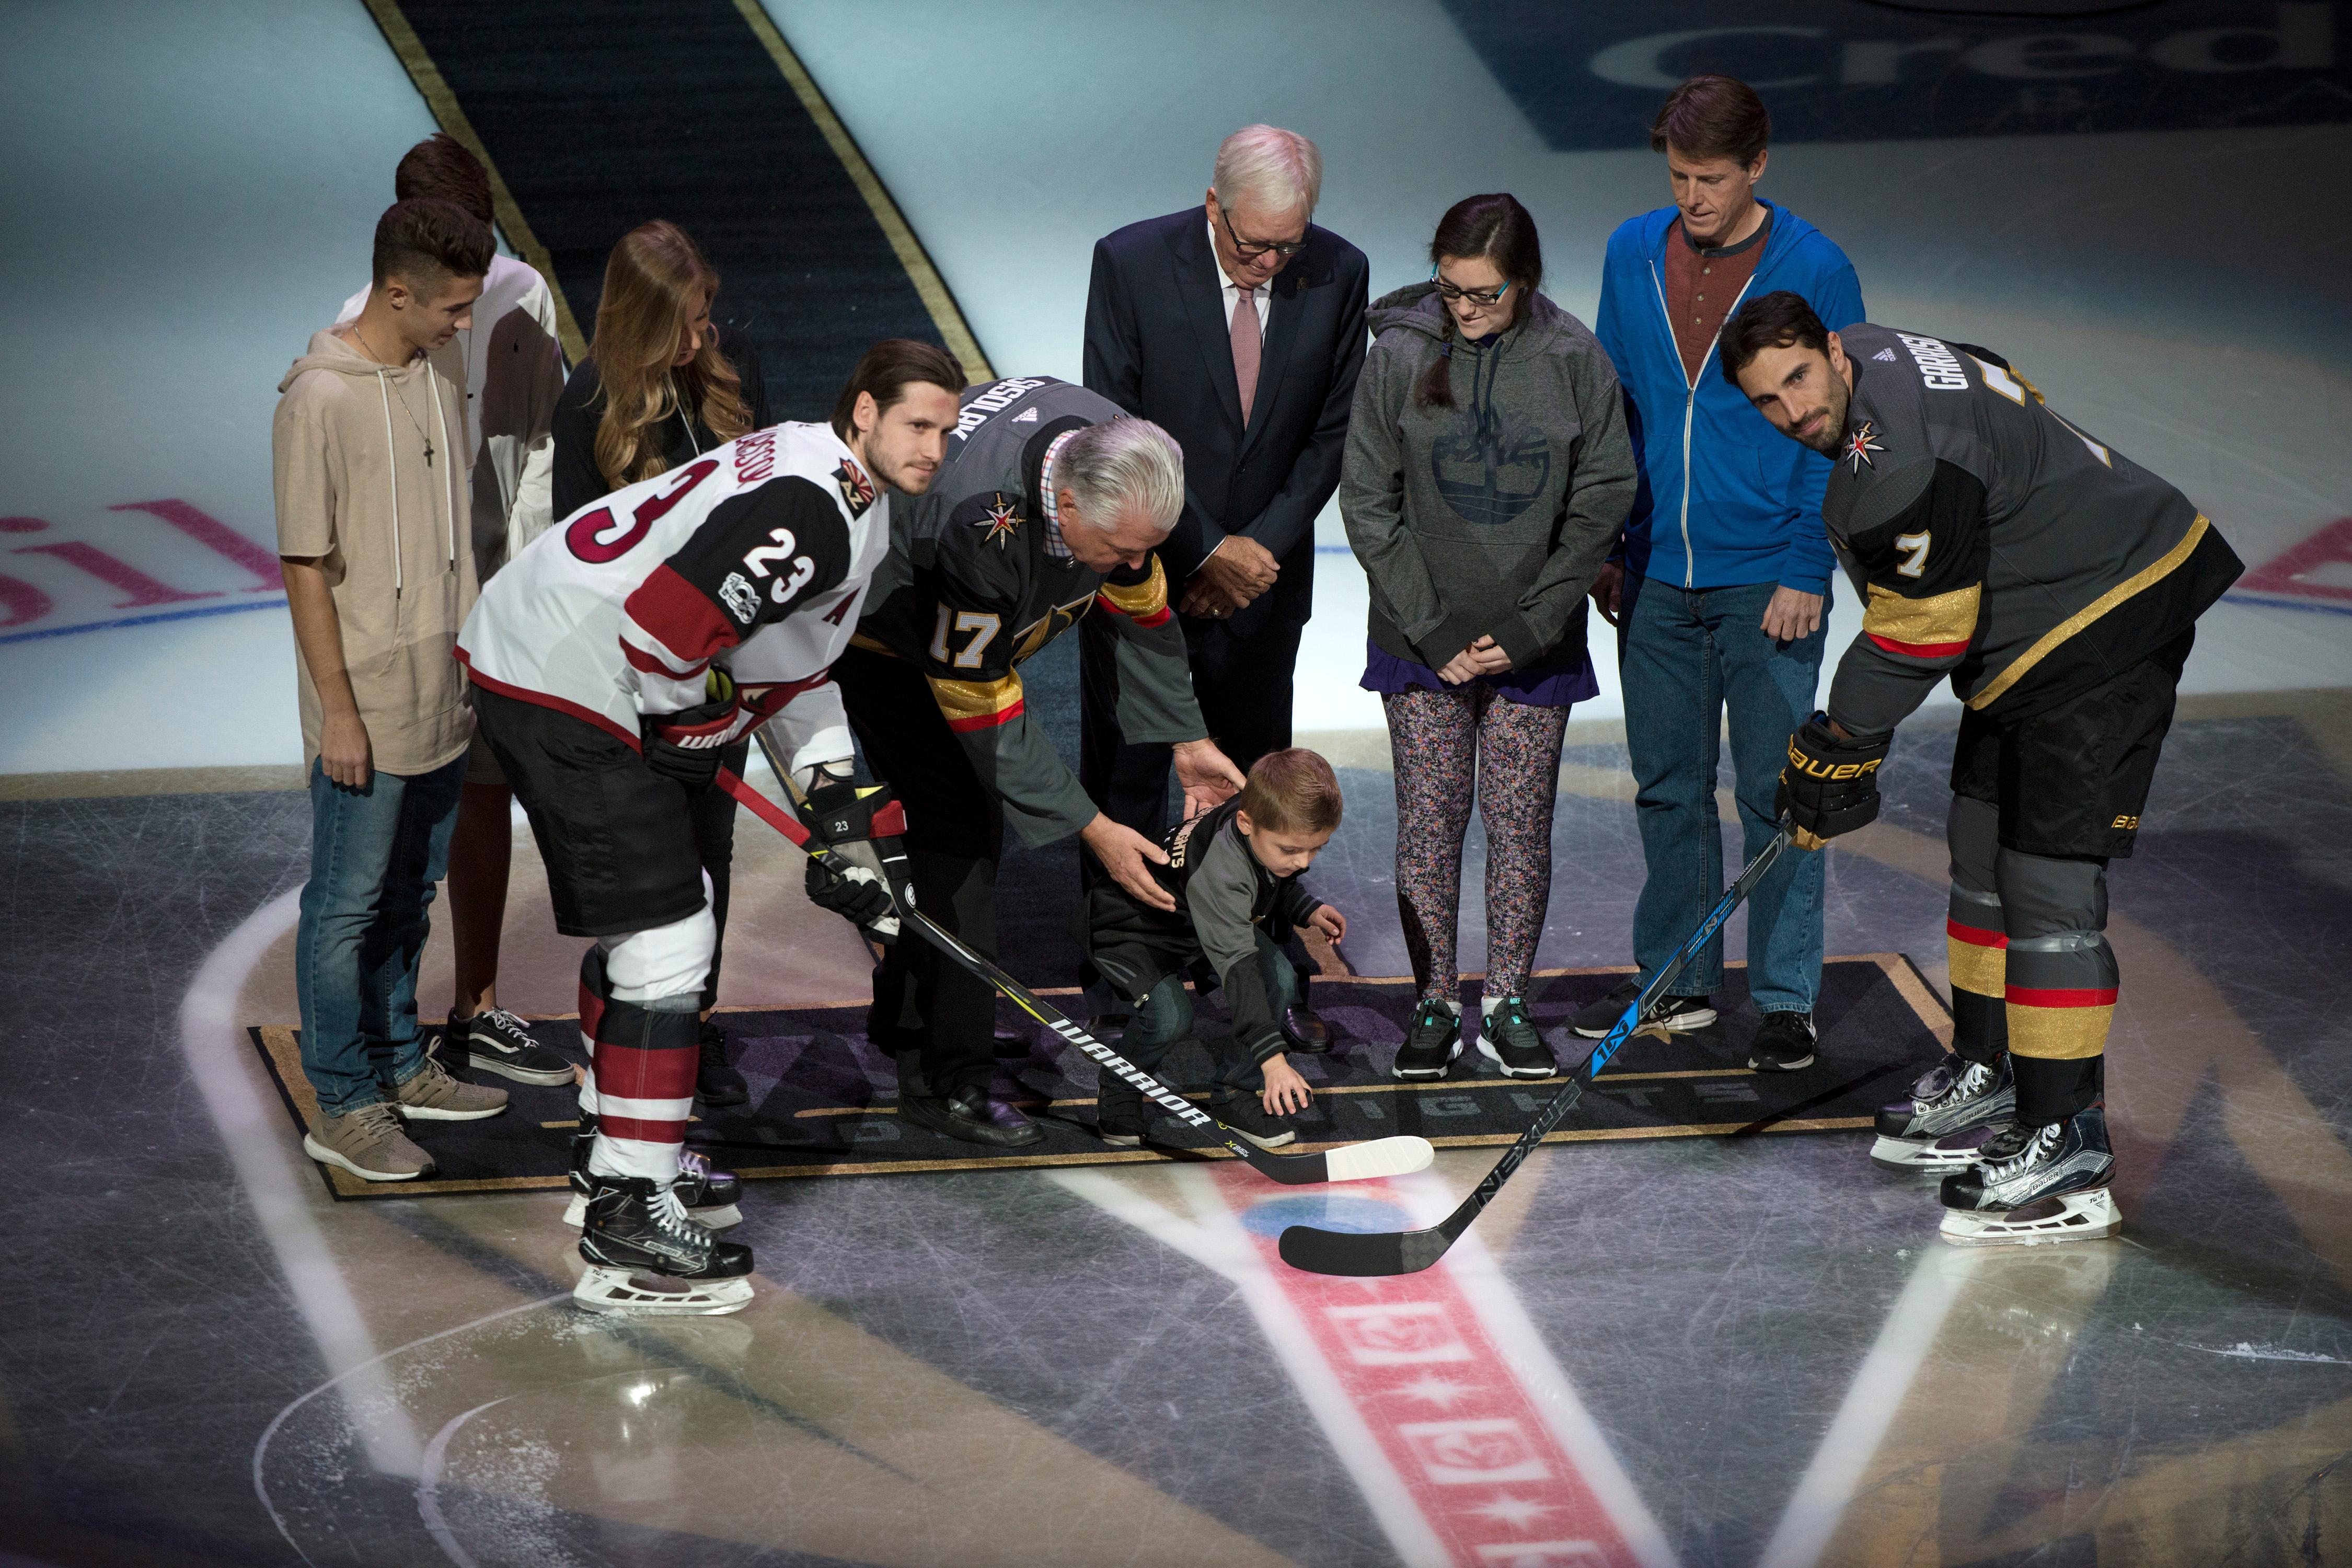 Survivors of the October 1st tragedy participate in a puck drop before the Vegas Golden Knights home opener against the Arizona Coyotes Tuesday, Oct. 10, 2017, at the T-Mobile Arena. The Knights won 5-2 to extend their winning streak to 3-0. CREDIT: Sam Morris/Las Vegas News Bureau